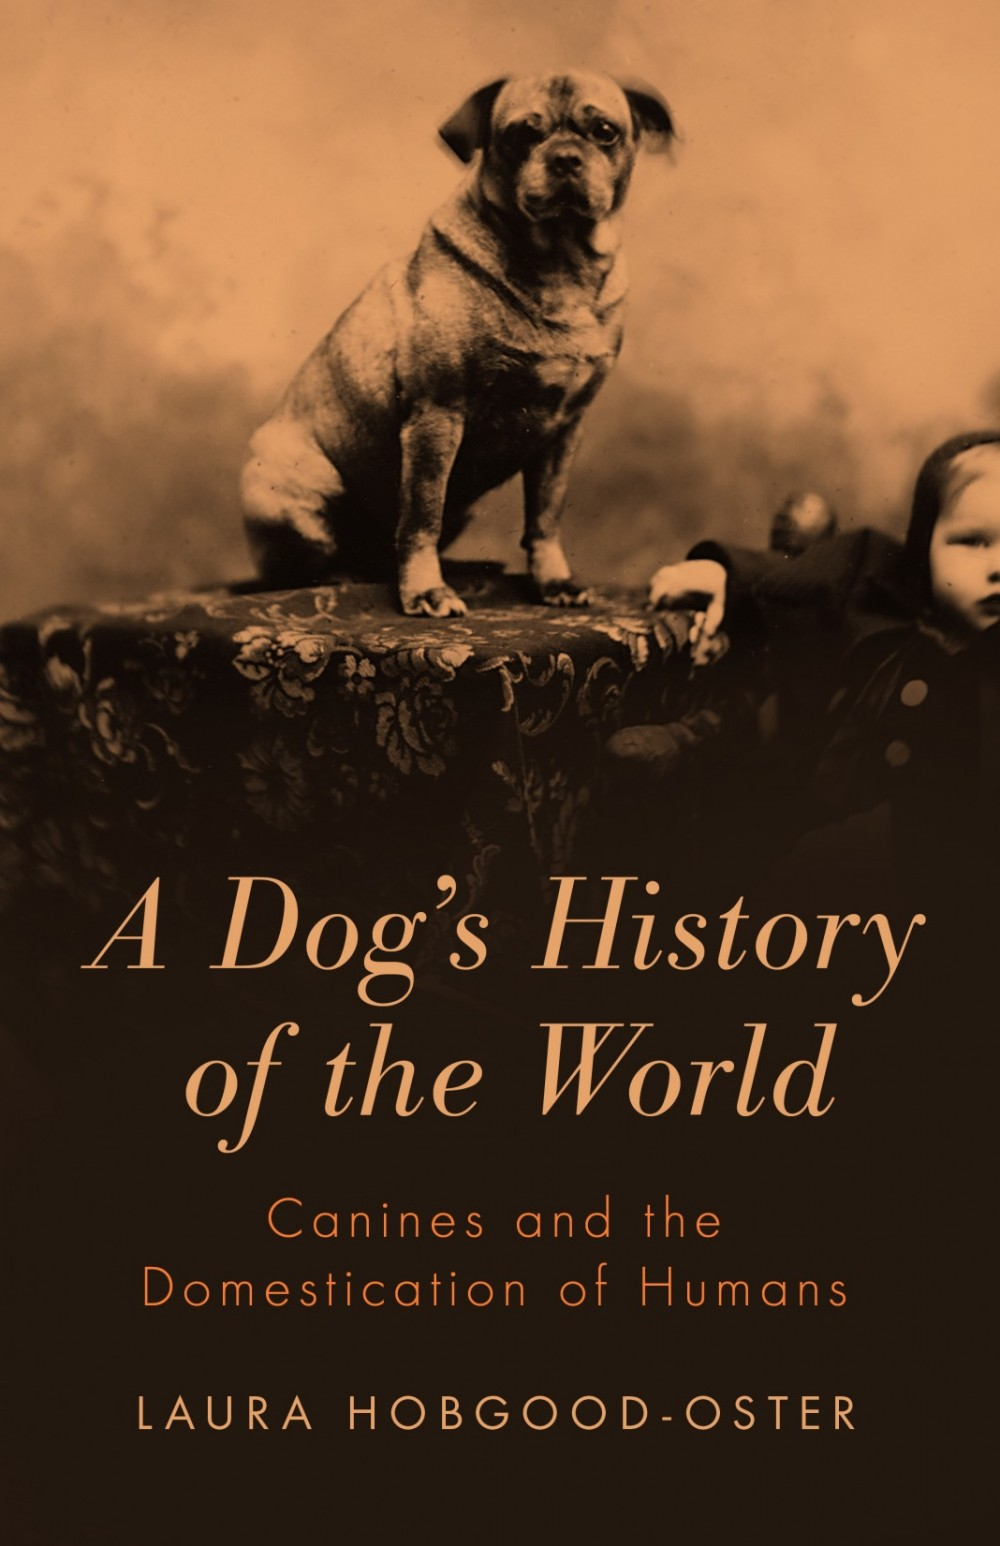 A Dog's History of the World is Professor Laura Hobgood-Oster's third book.